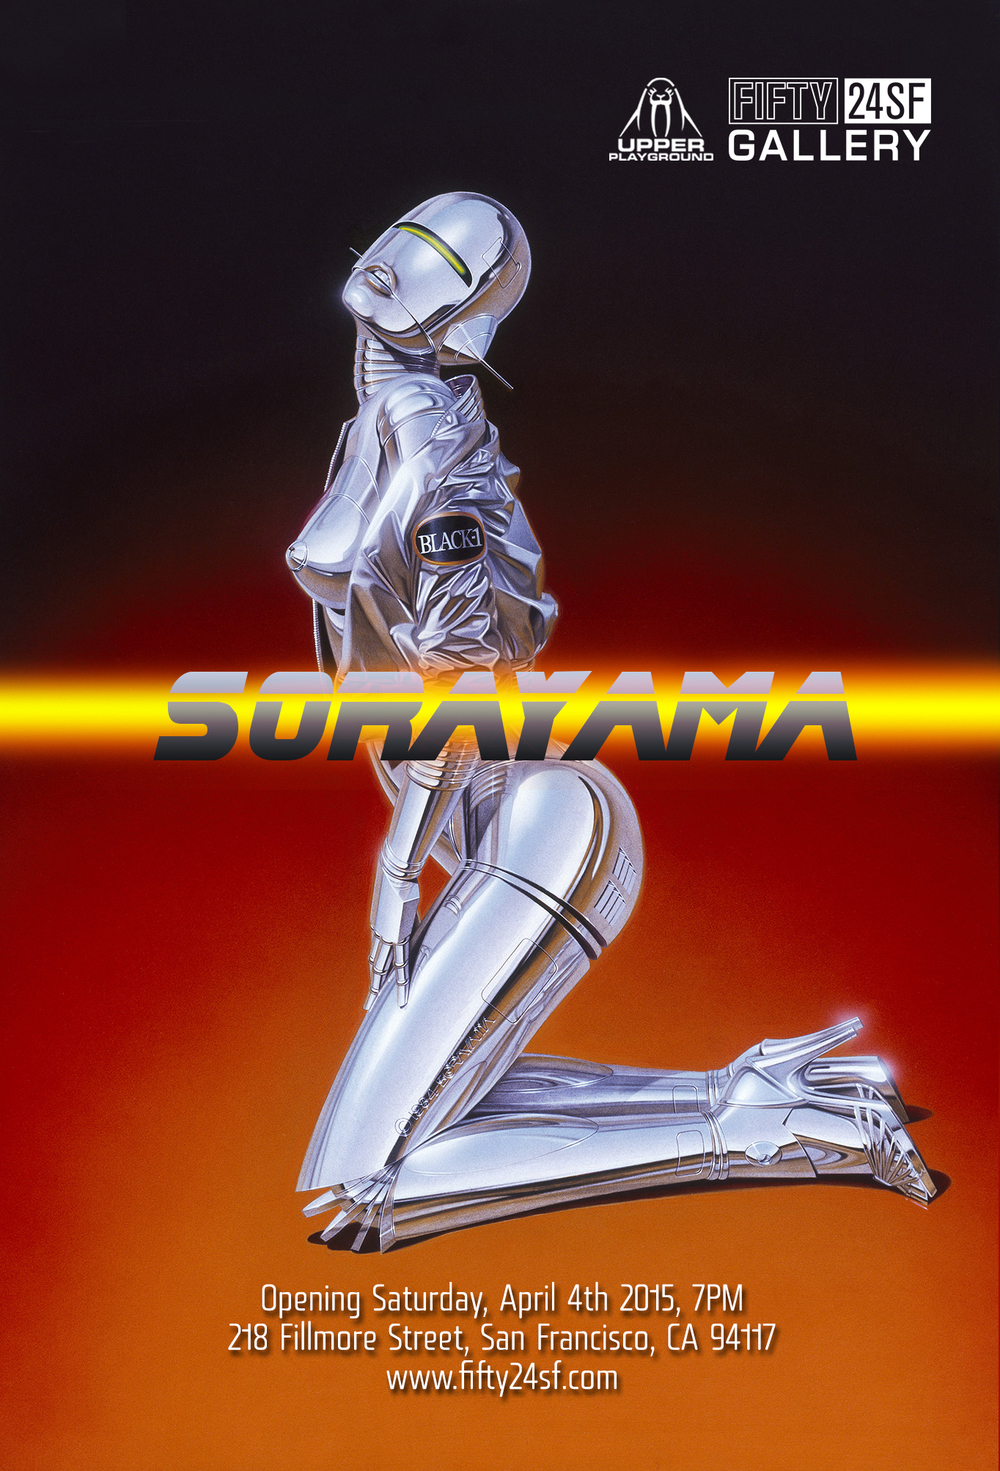 Sorayama-Fifty24SF-San-Francisco.jpg